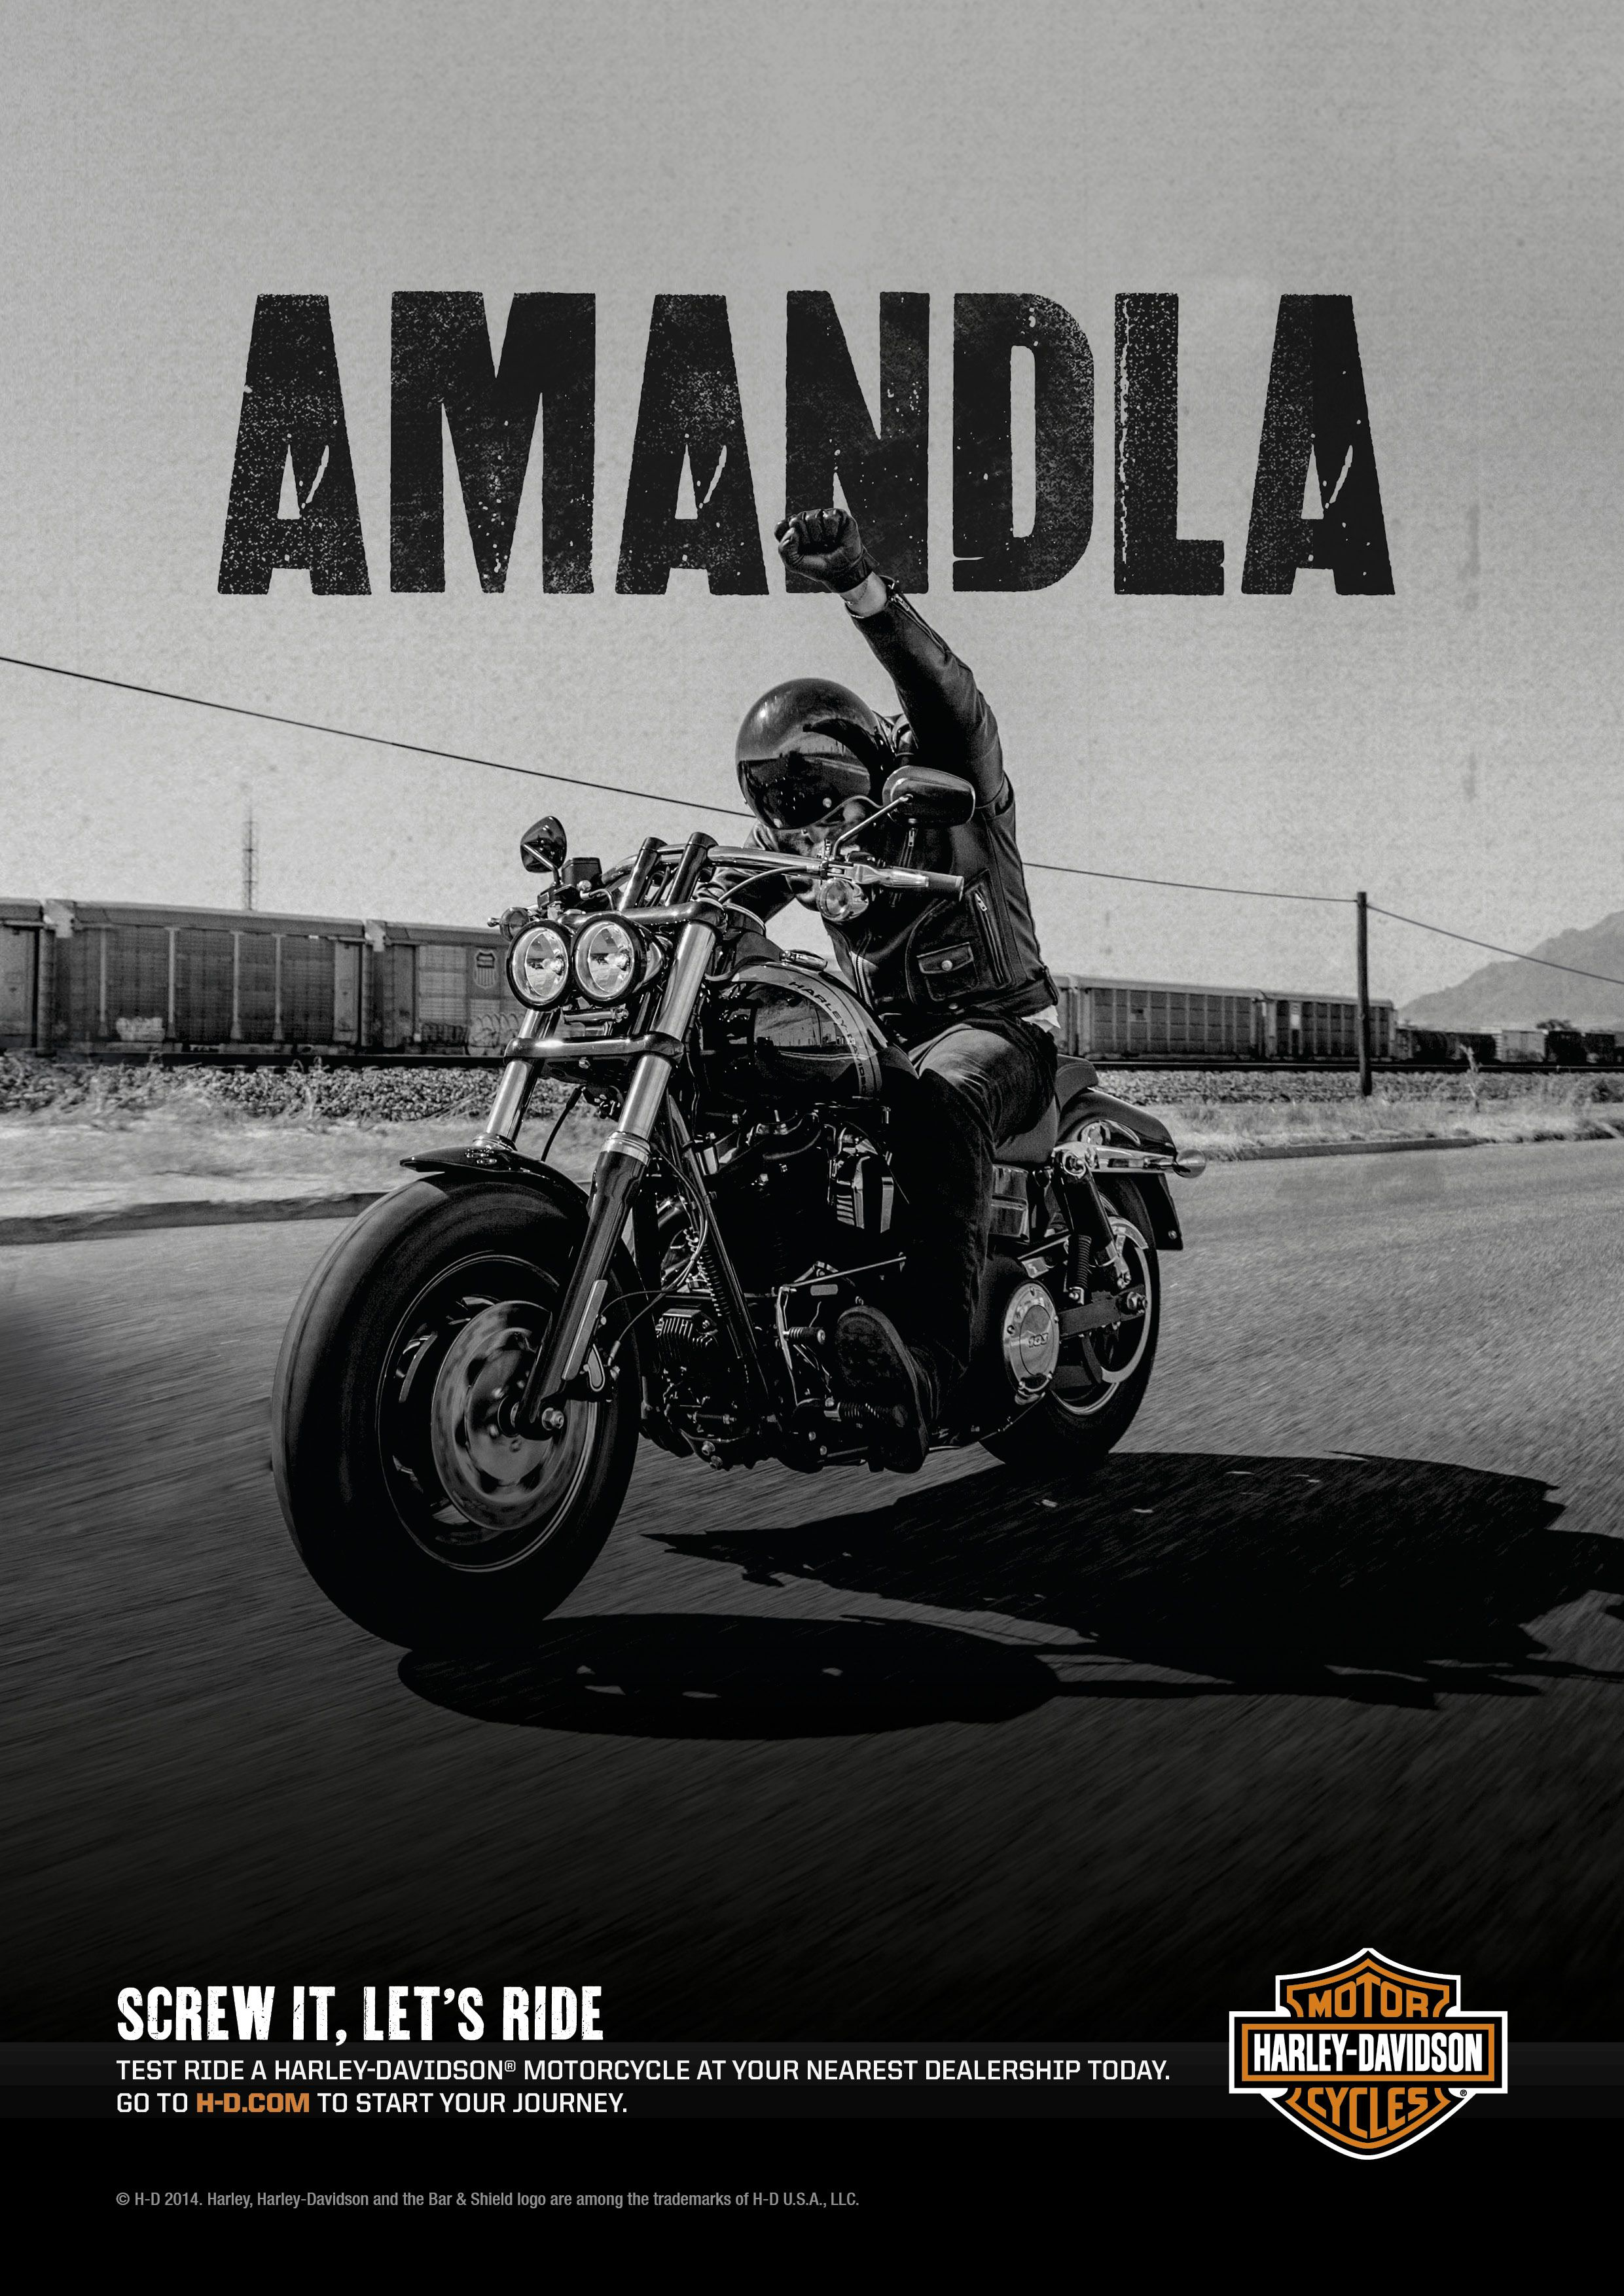 Harley Davidson Advertising: Our Local Creative Work For The Harley-Davidson® 'Screw It